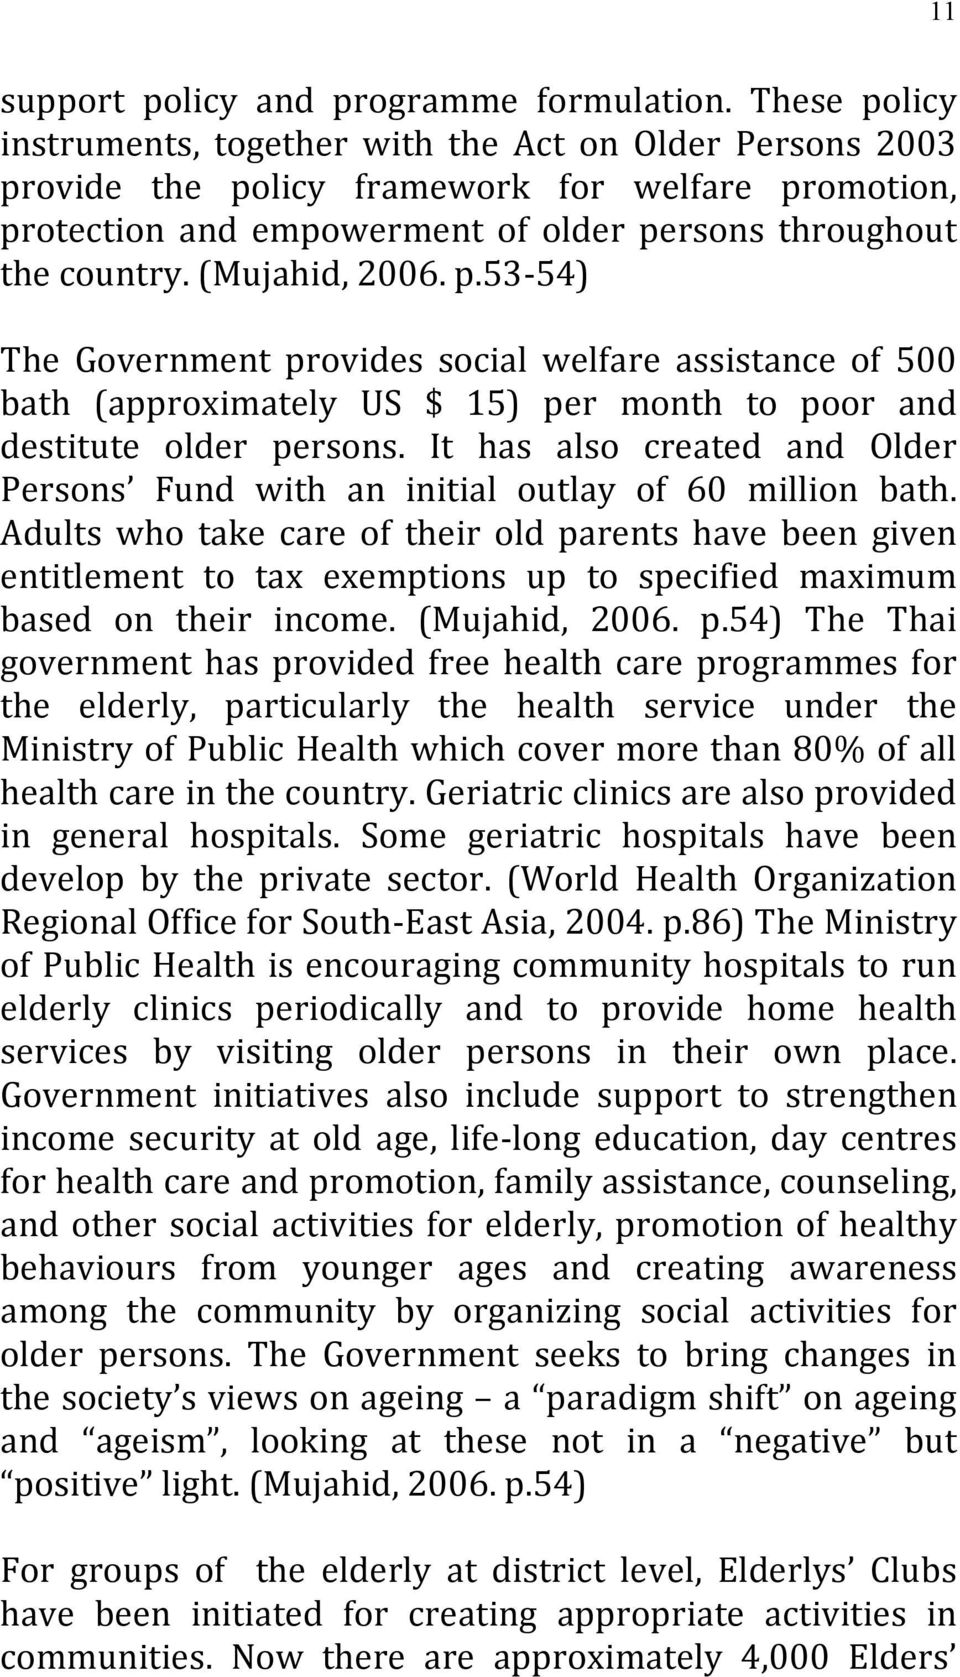 (Mujahid, 2006. p.53 54) The Government provides social welfare assistance of 500 bath (approximately US $ 15) per month to poor and destitute older persons.